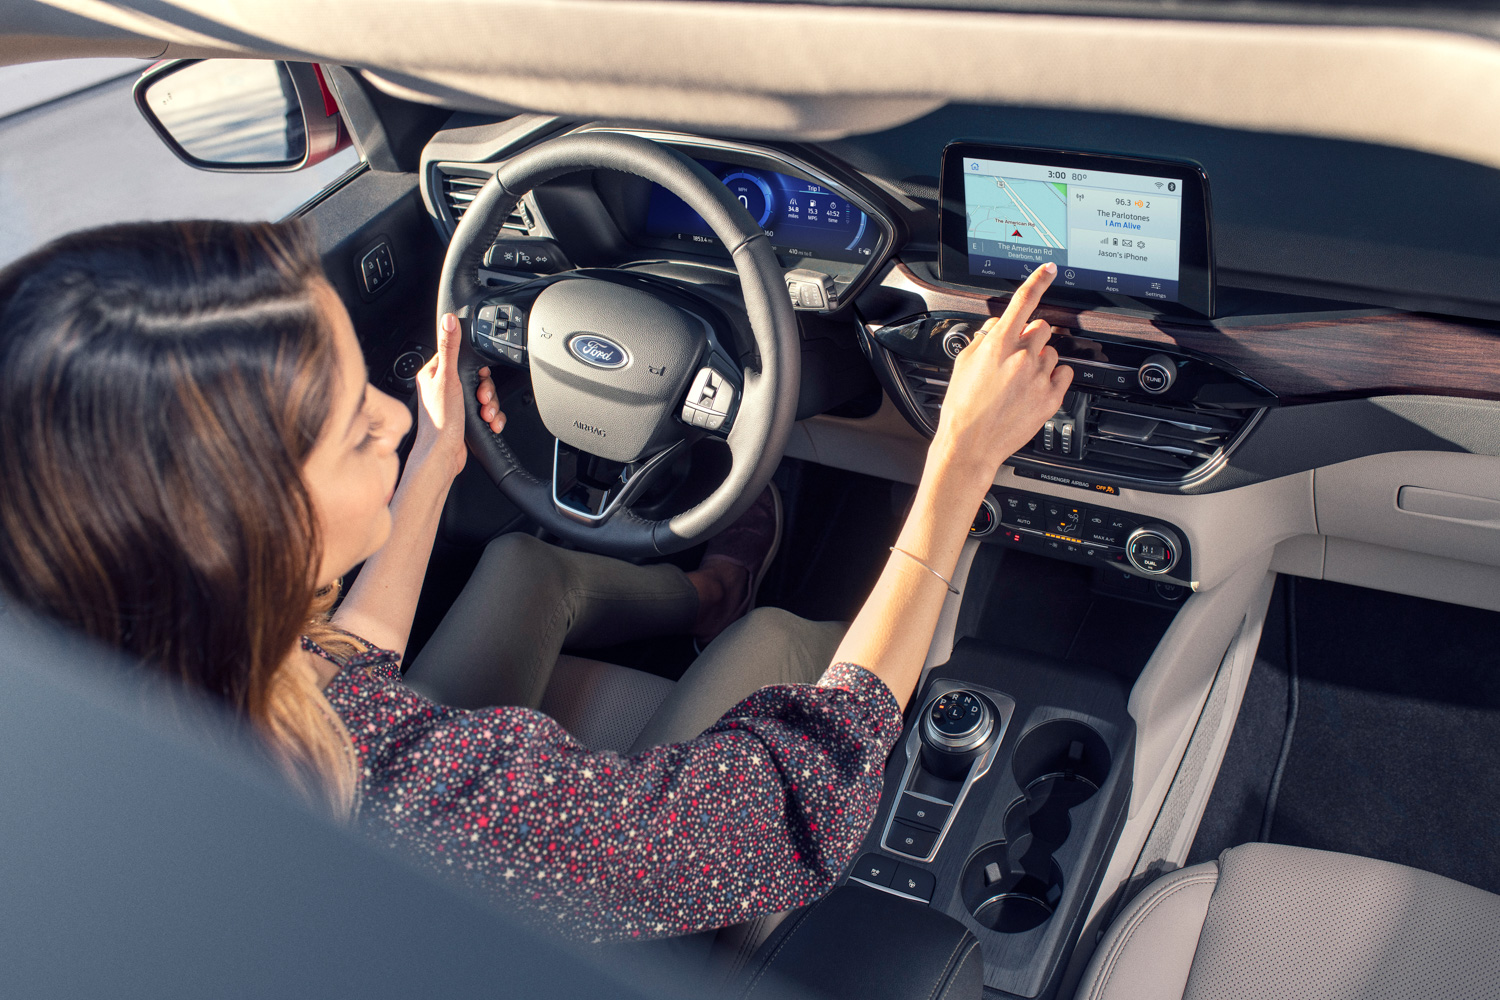 2020 Ford Escape infotainment